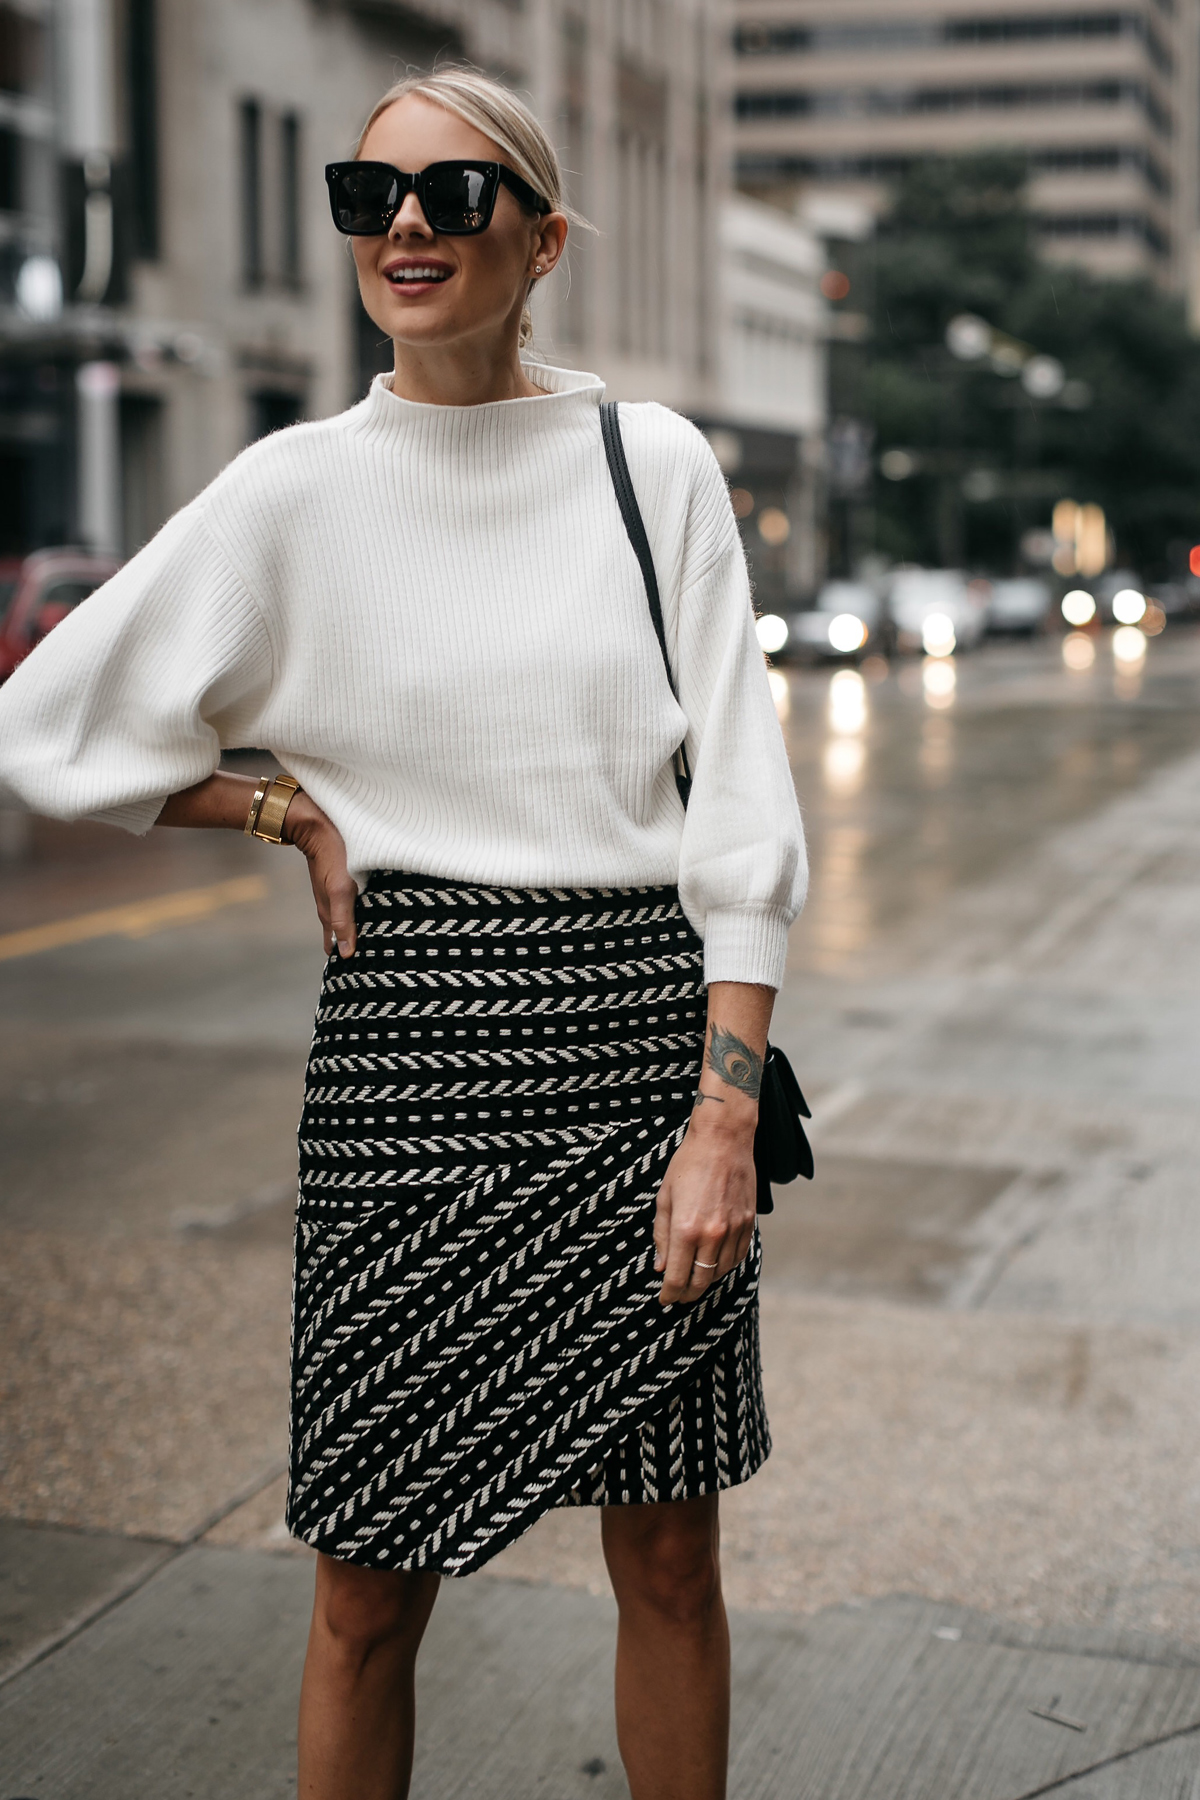 Fashion Jackson White Sweater Rachel Parcell Black and White Jacquard Skirt 1